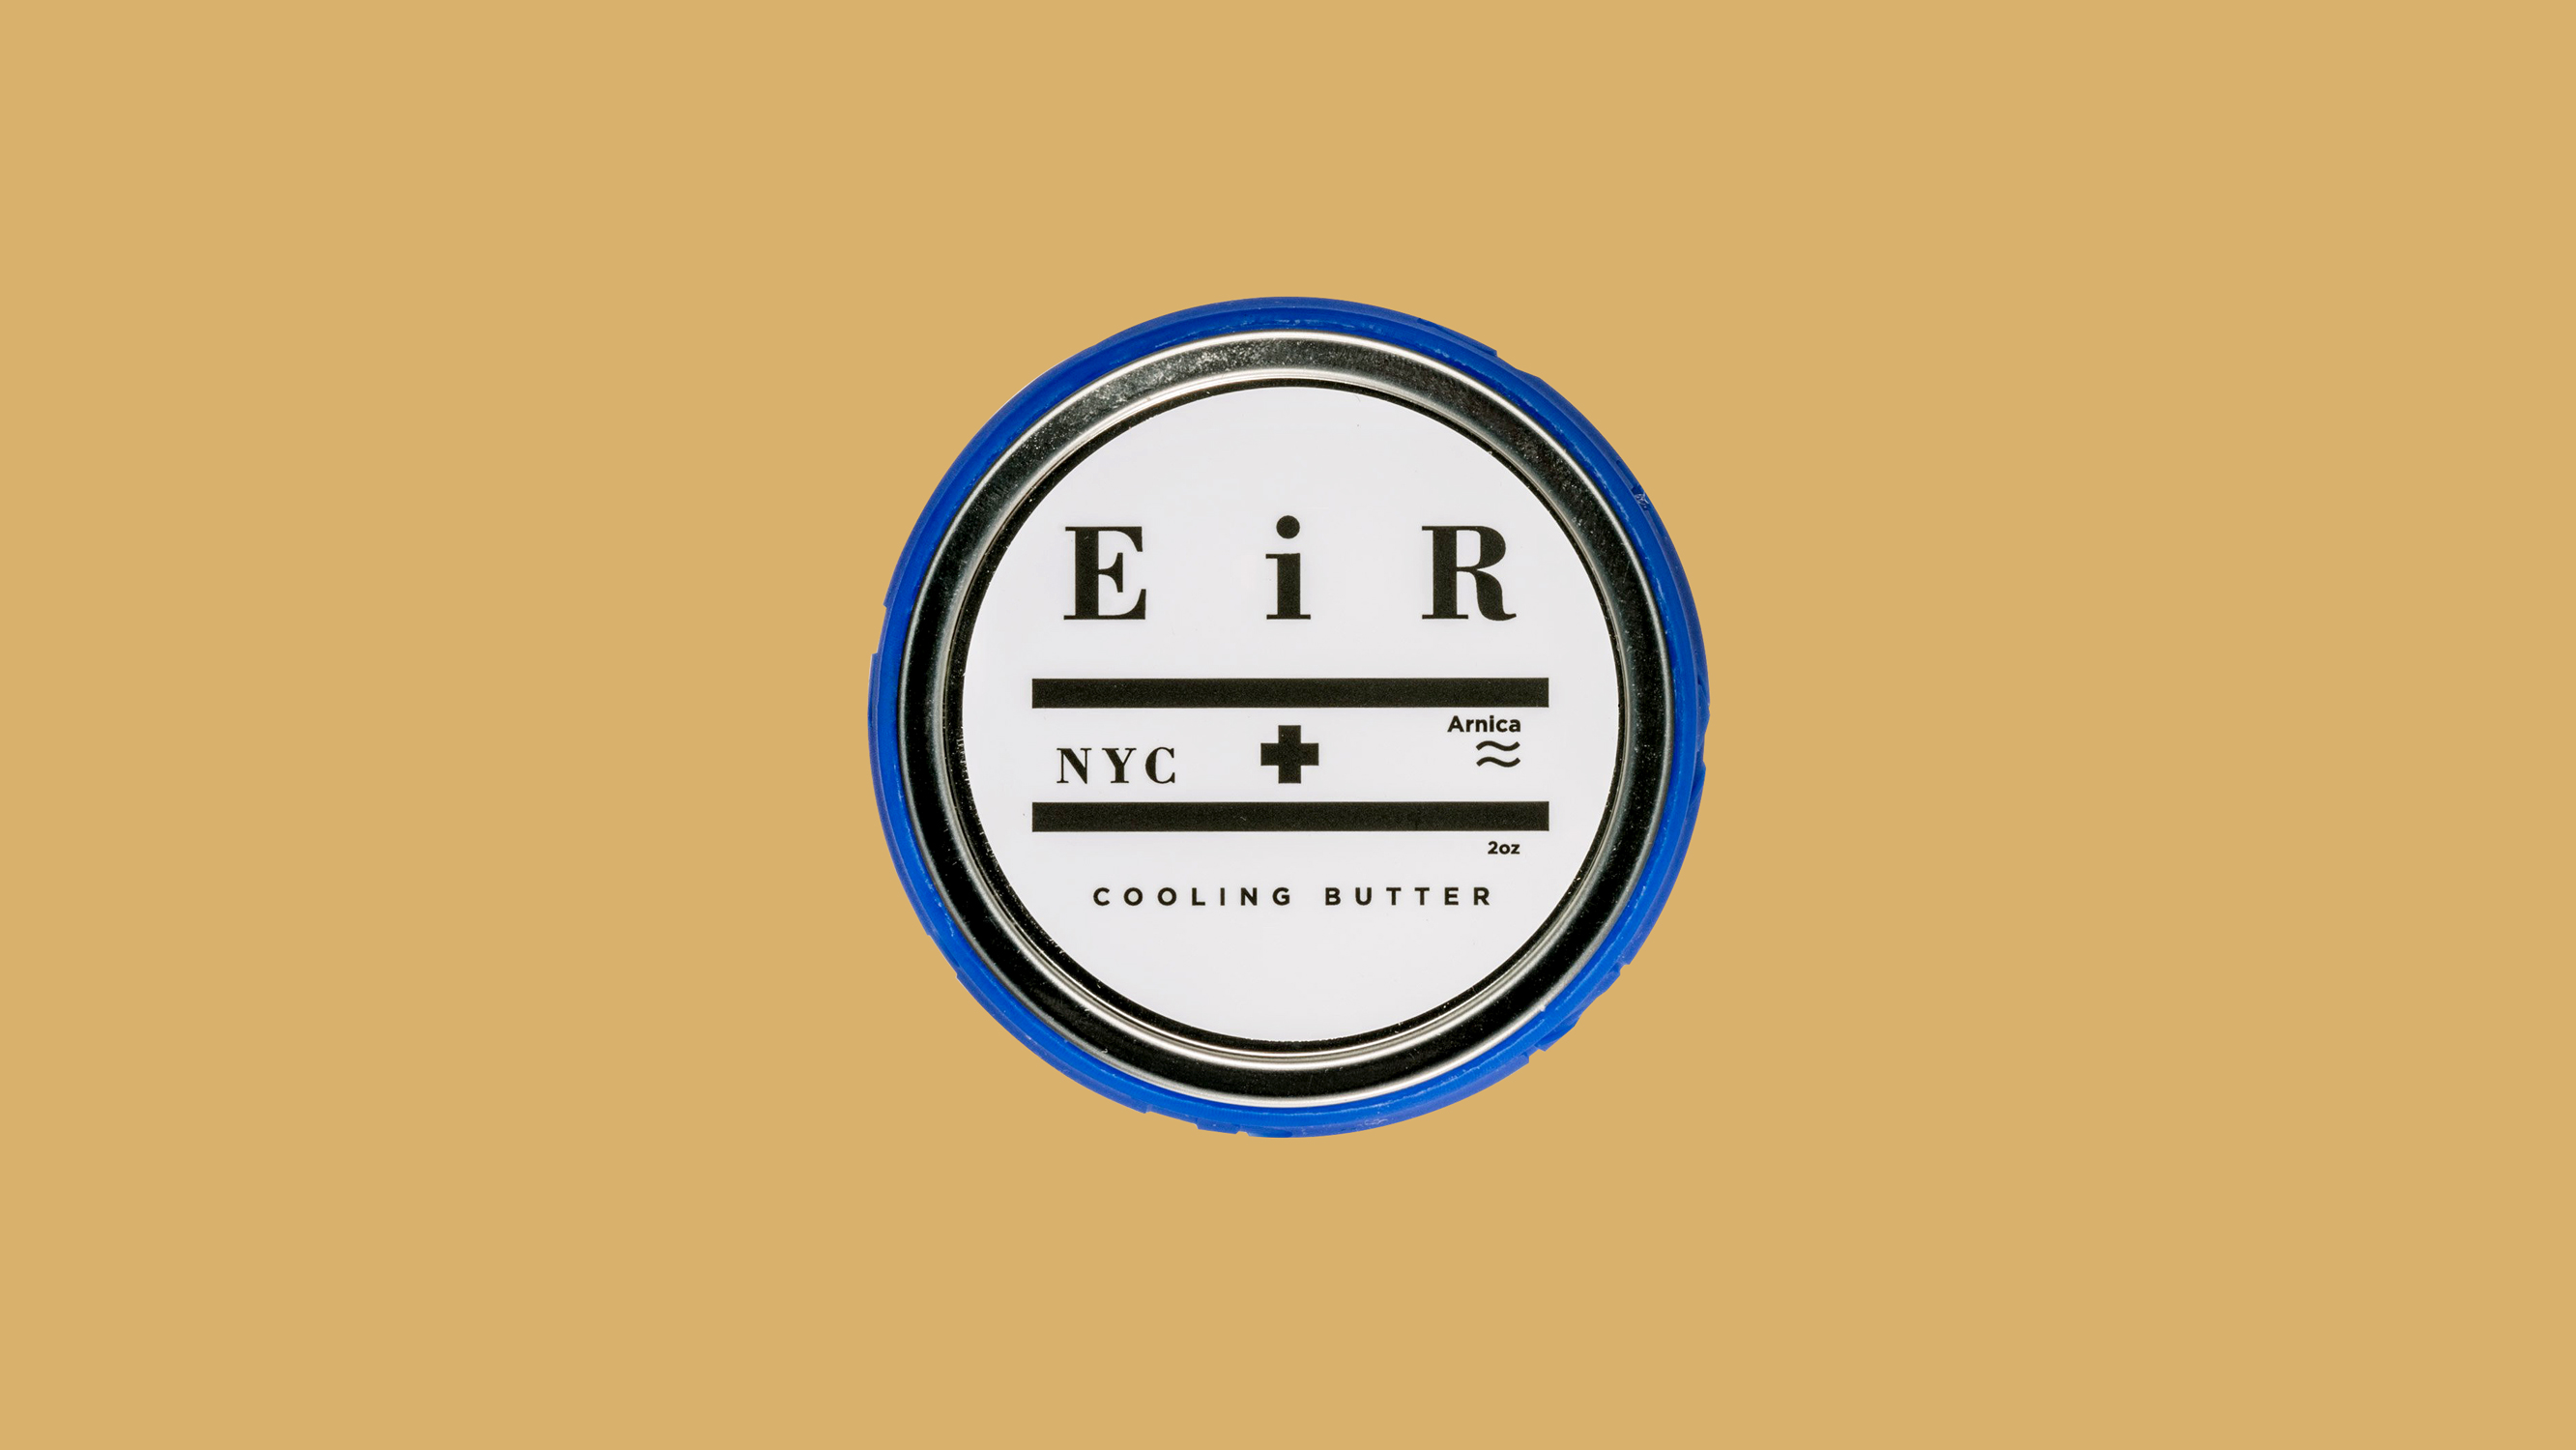 Eir NYC Cooling Butter